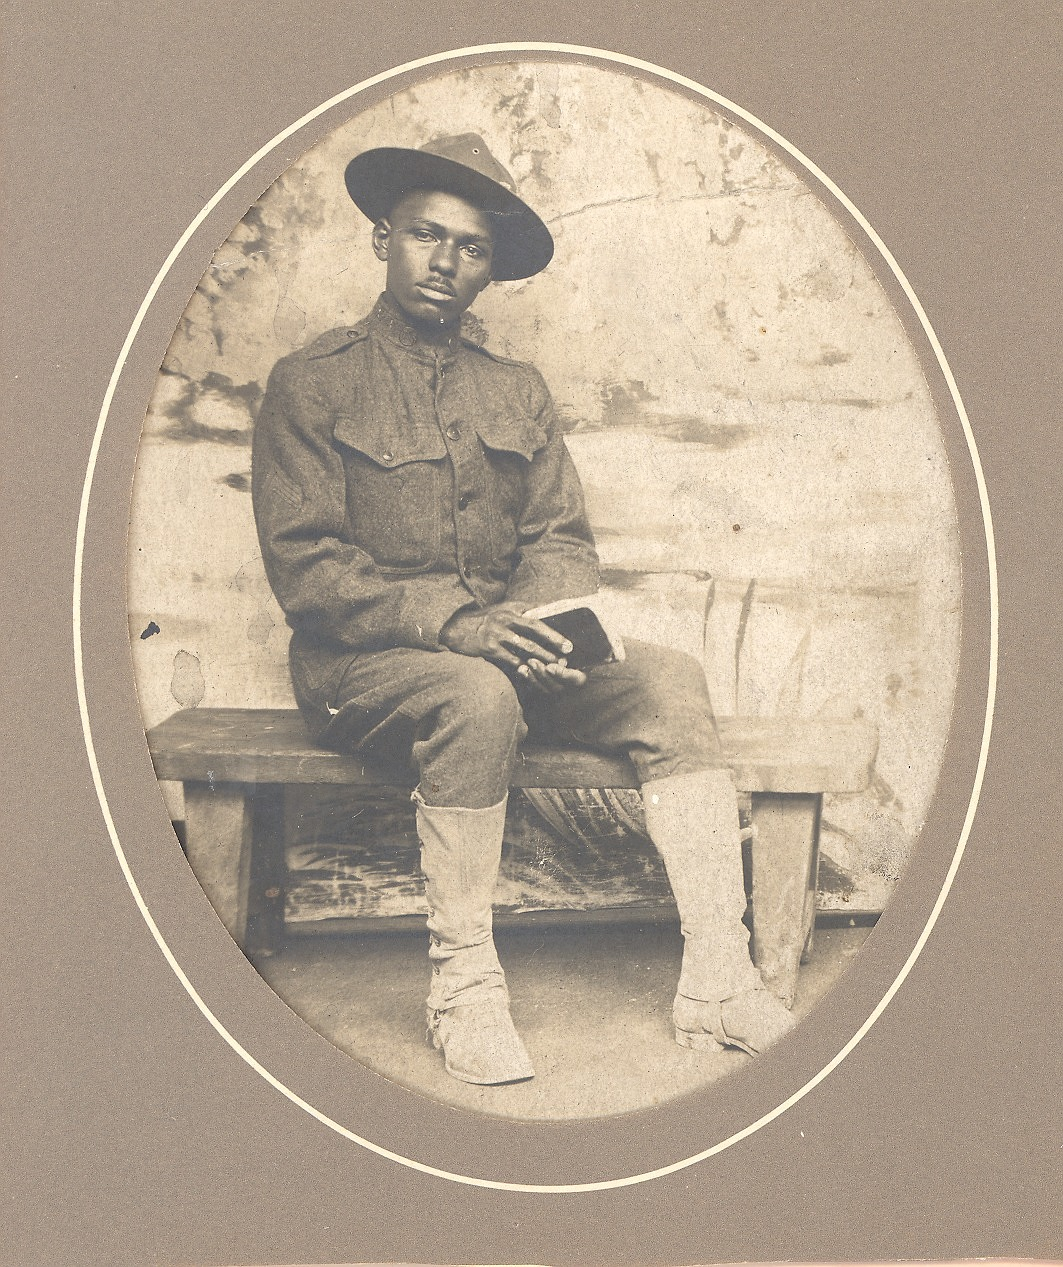 images for Portrait of J.W. (James William) Lucus in Jussey, France during World War I